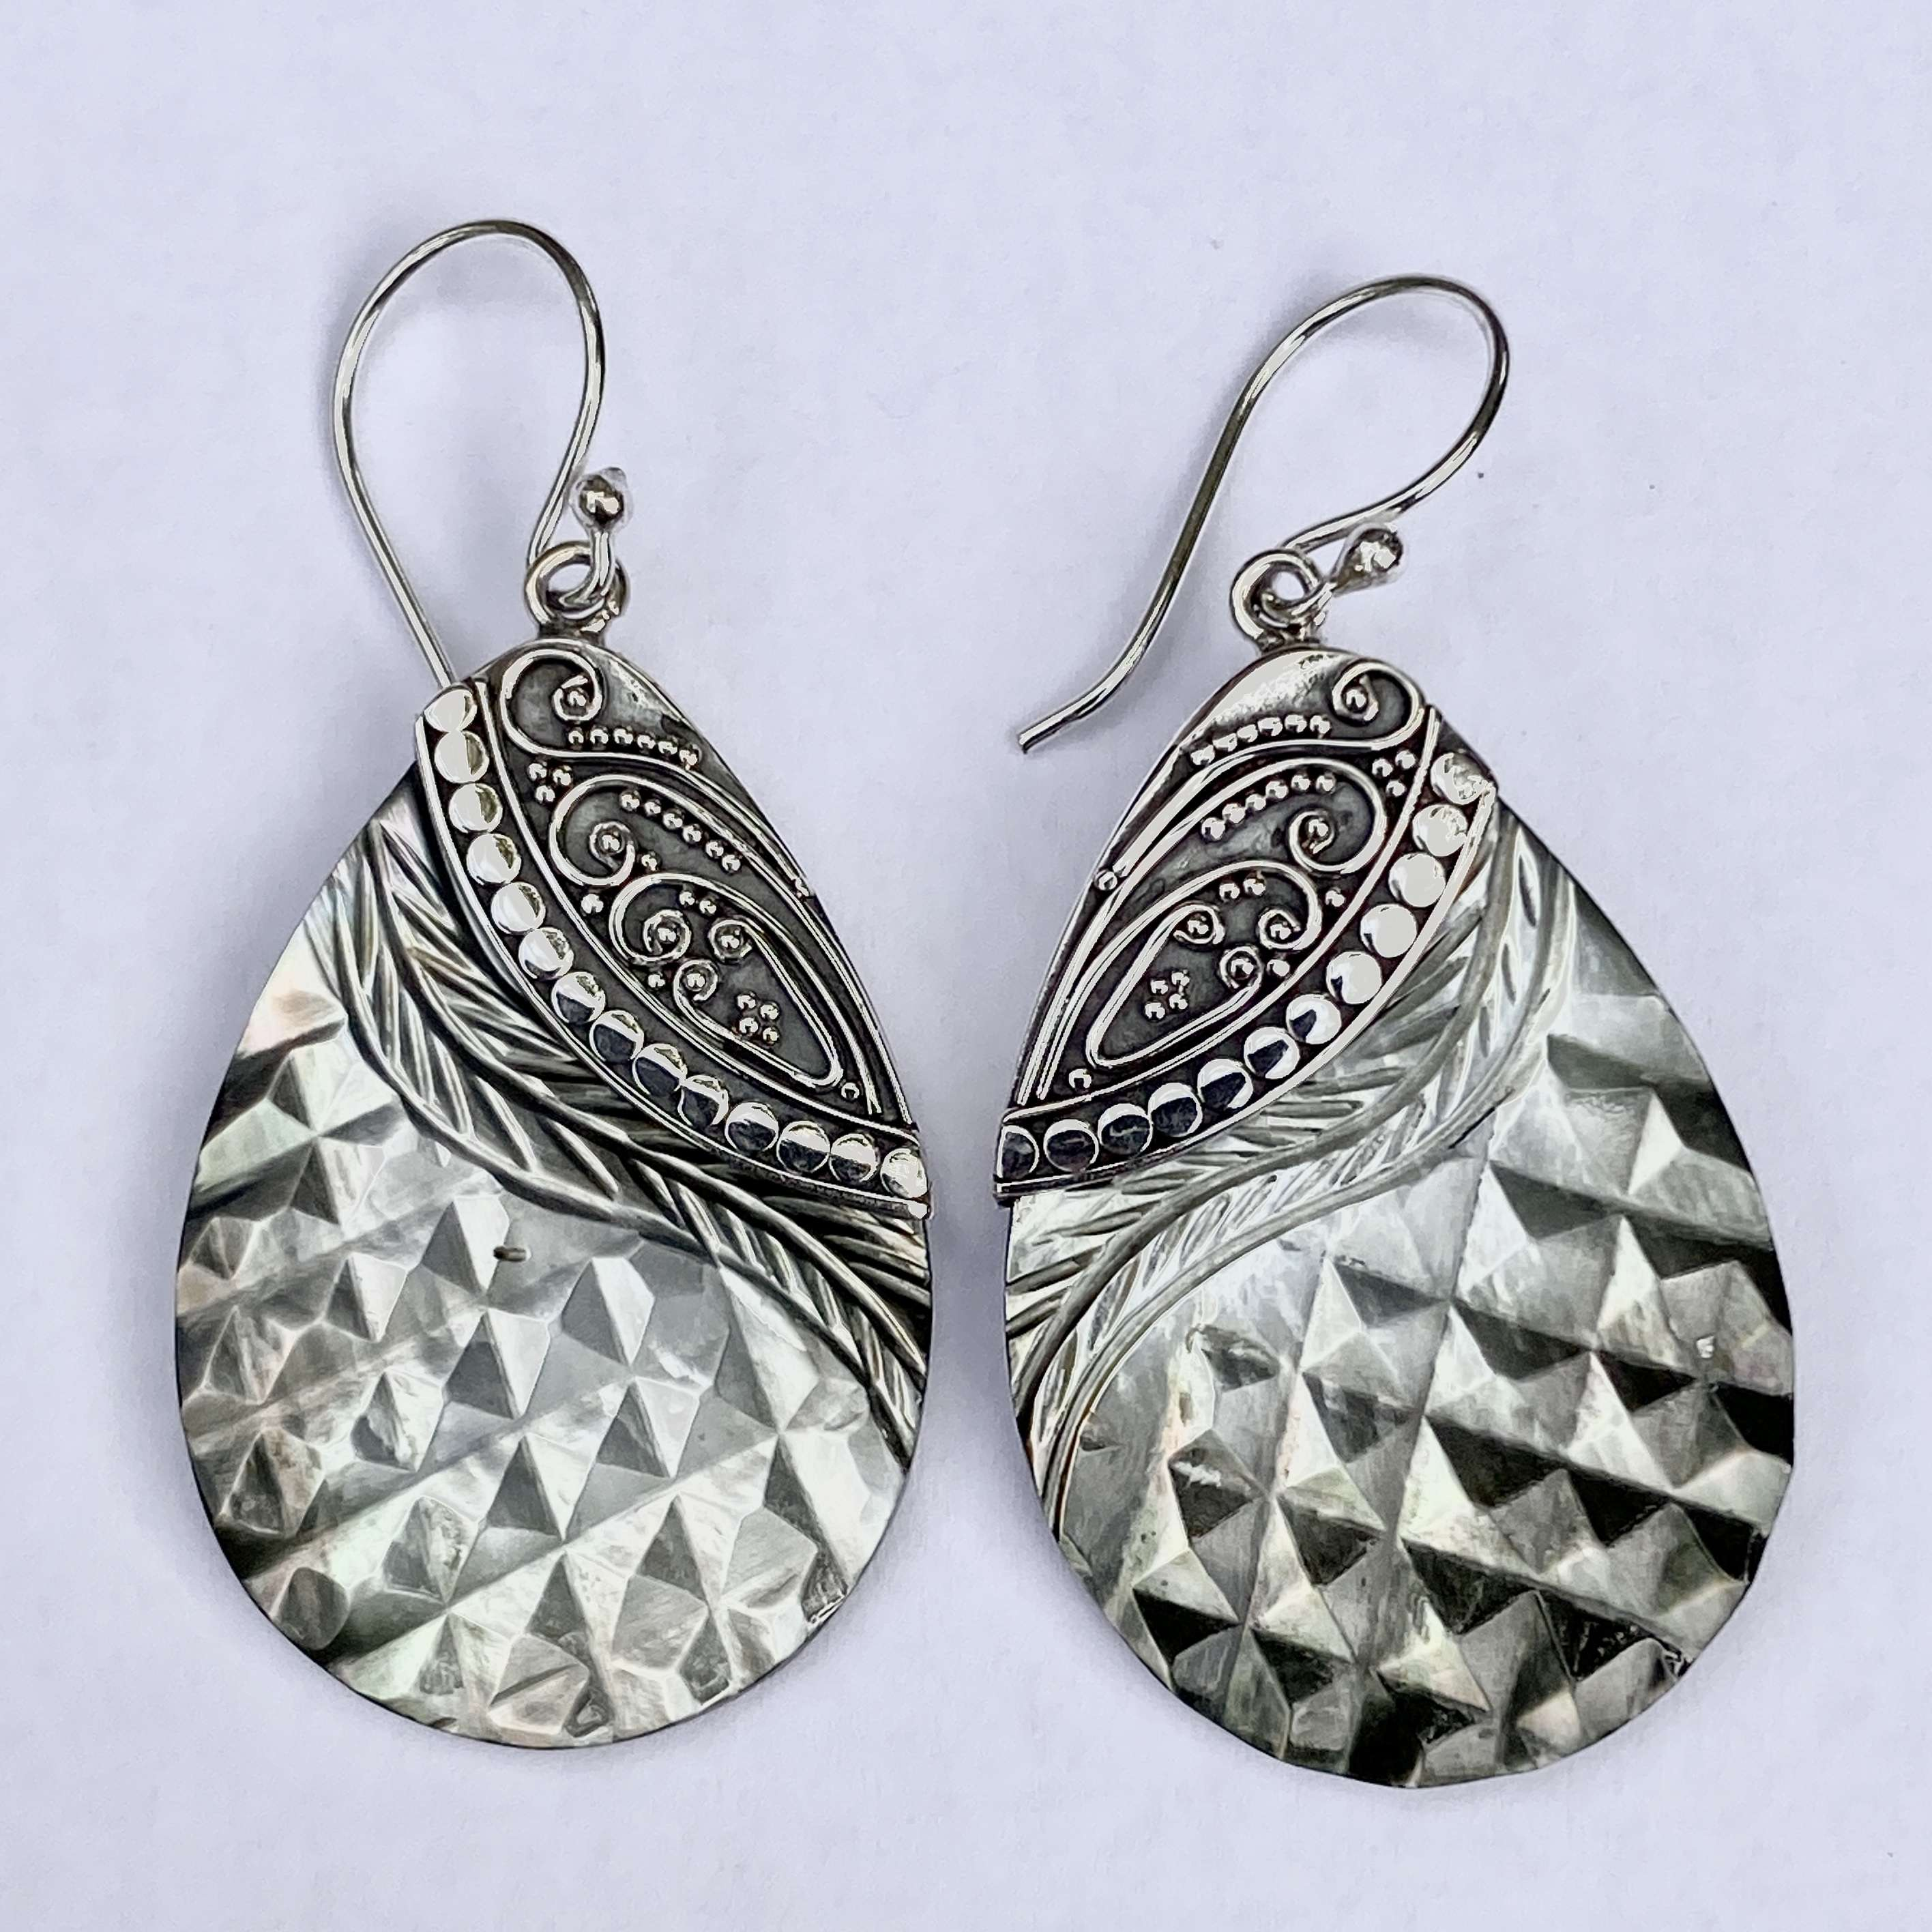 (HANDMADE 925 BALI SILVER EARRINGS WITH CHAMPAIGN SHELL)